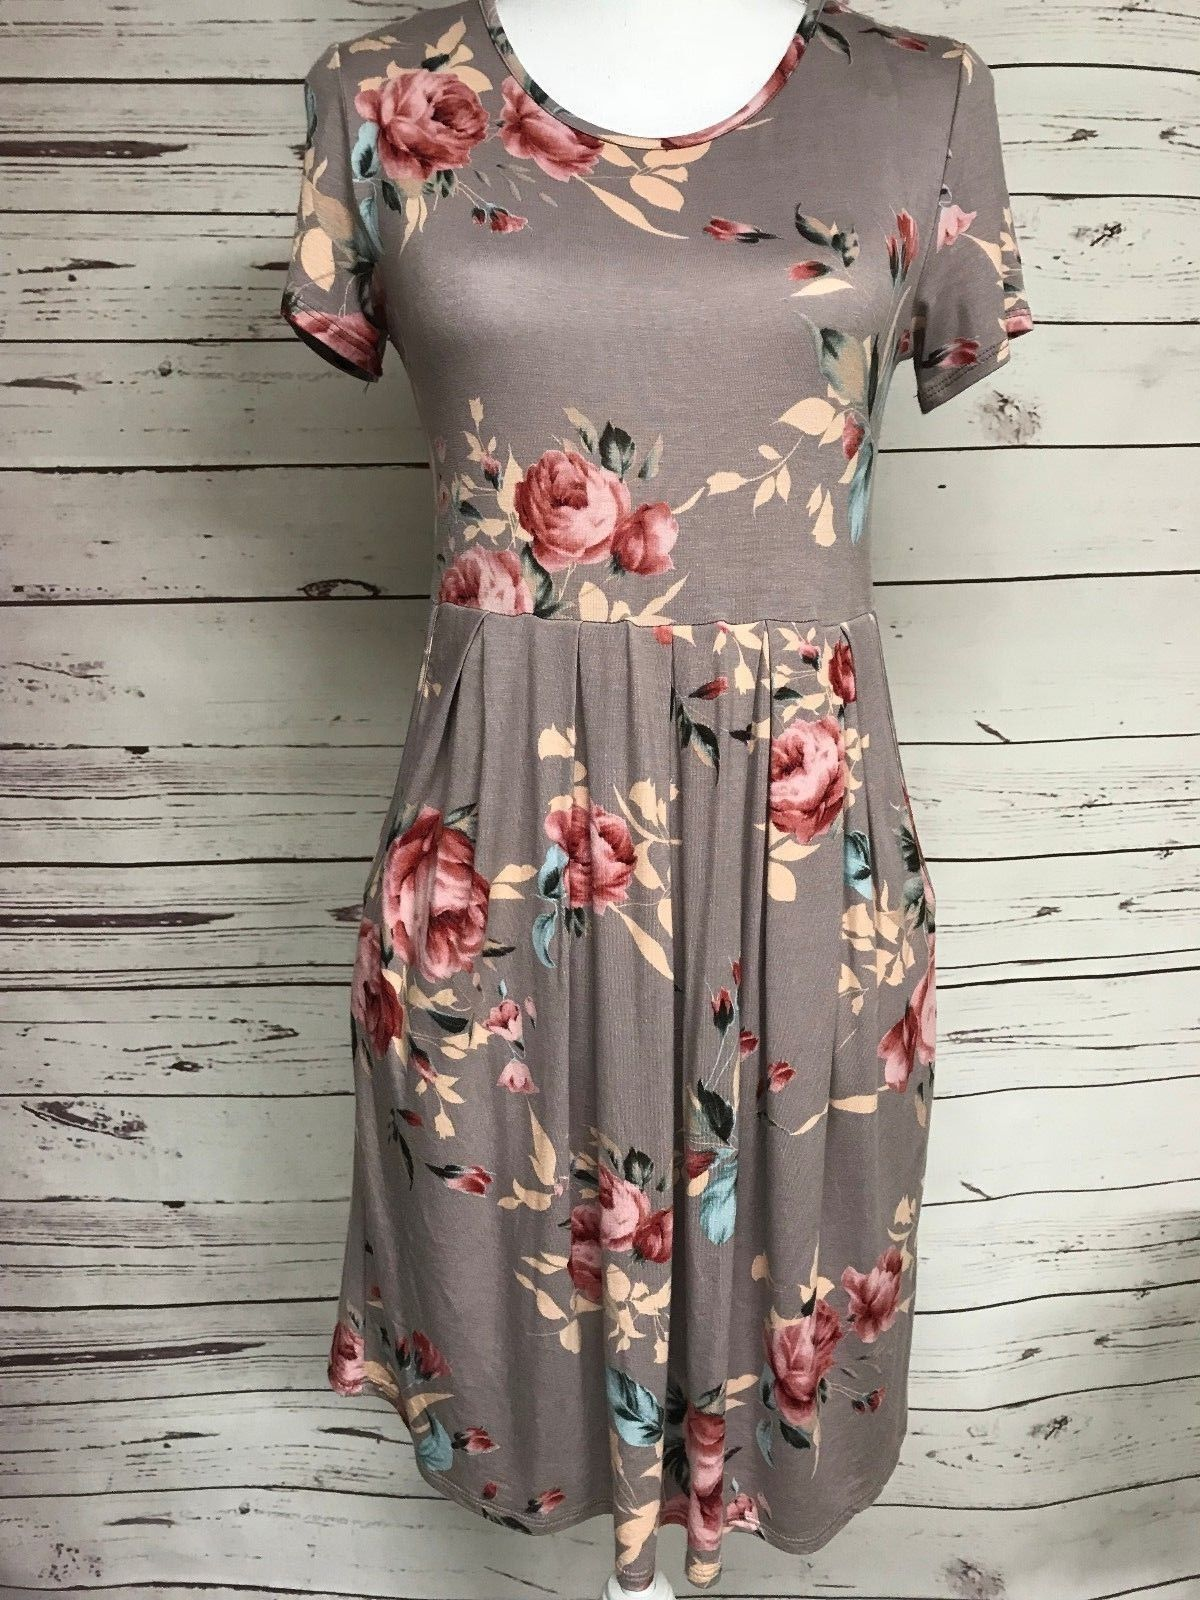 Excellent Boutique Girls Dress Size 10 12 Floral With Bell Sleeves Boutique Dresses Ideas Of Green Dress Casual Girls Boutique Dress Girls Size 10 Dresses